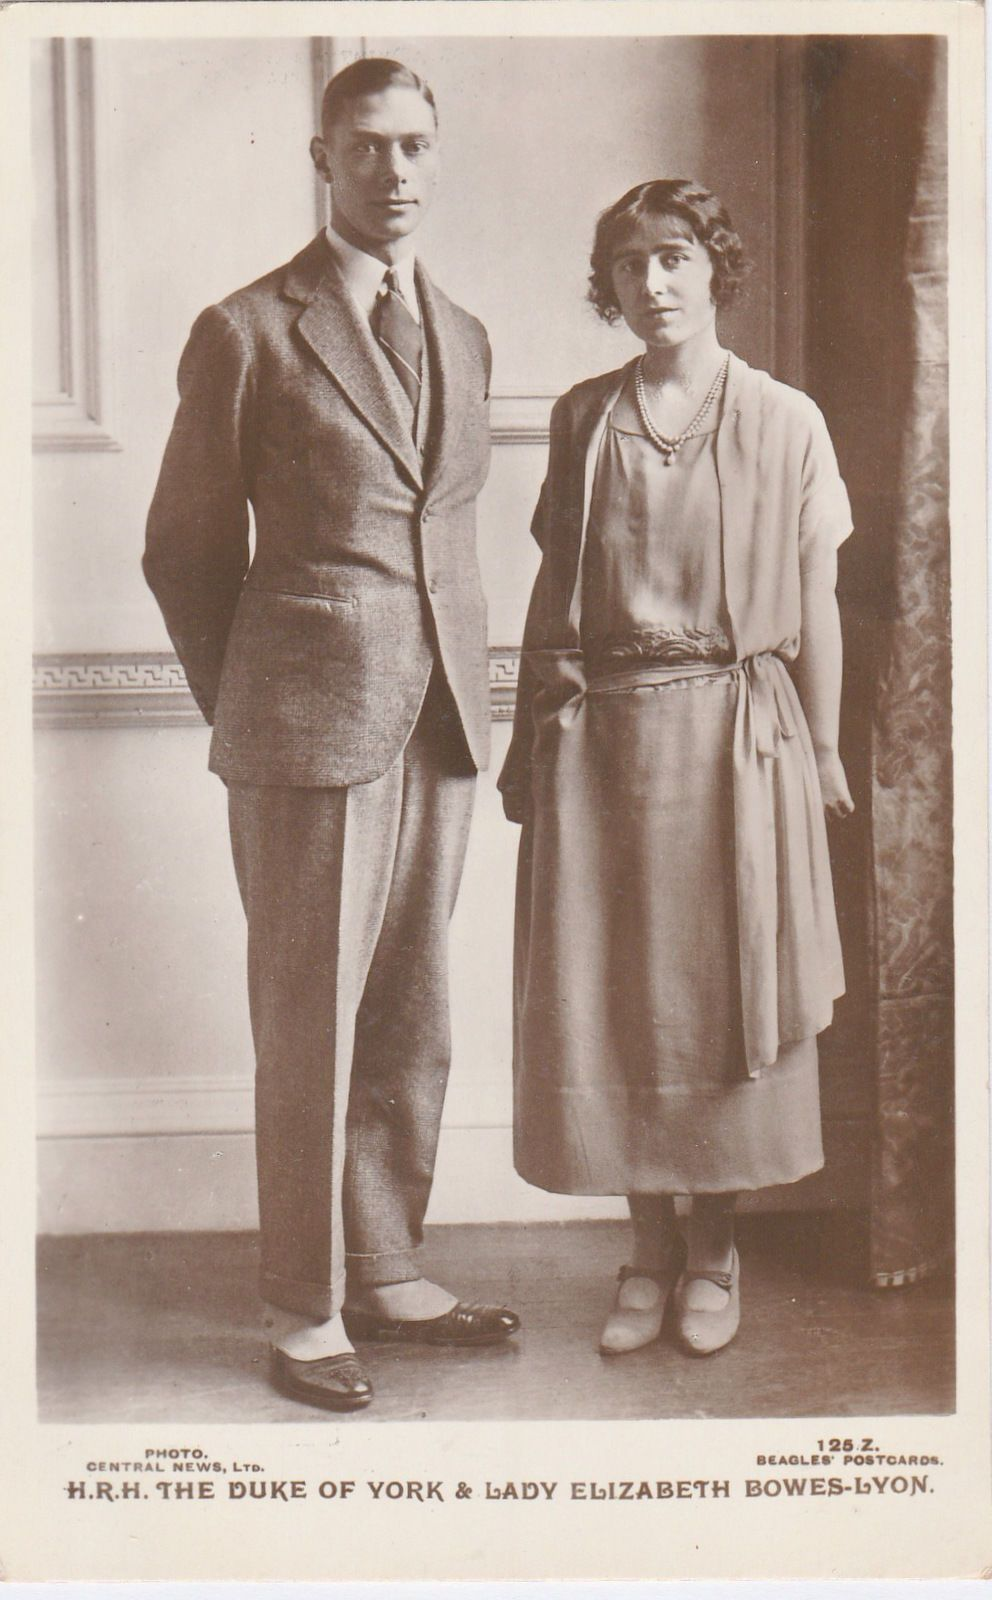 Details About History Of British Monarchy Rare Royalty Photo Duke Of York And Lady Elizabeth With Images Queen Mother Lady Elizabeth George Vi